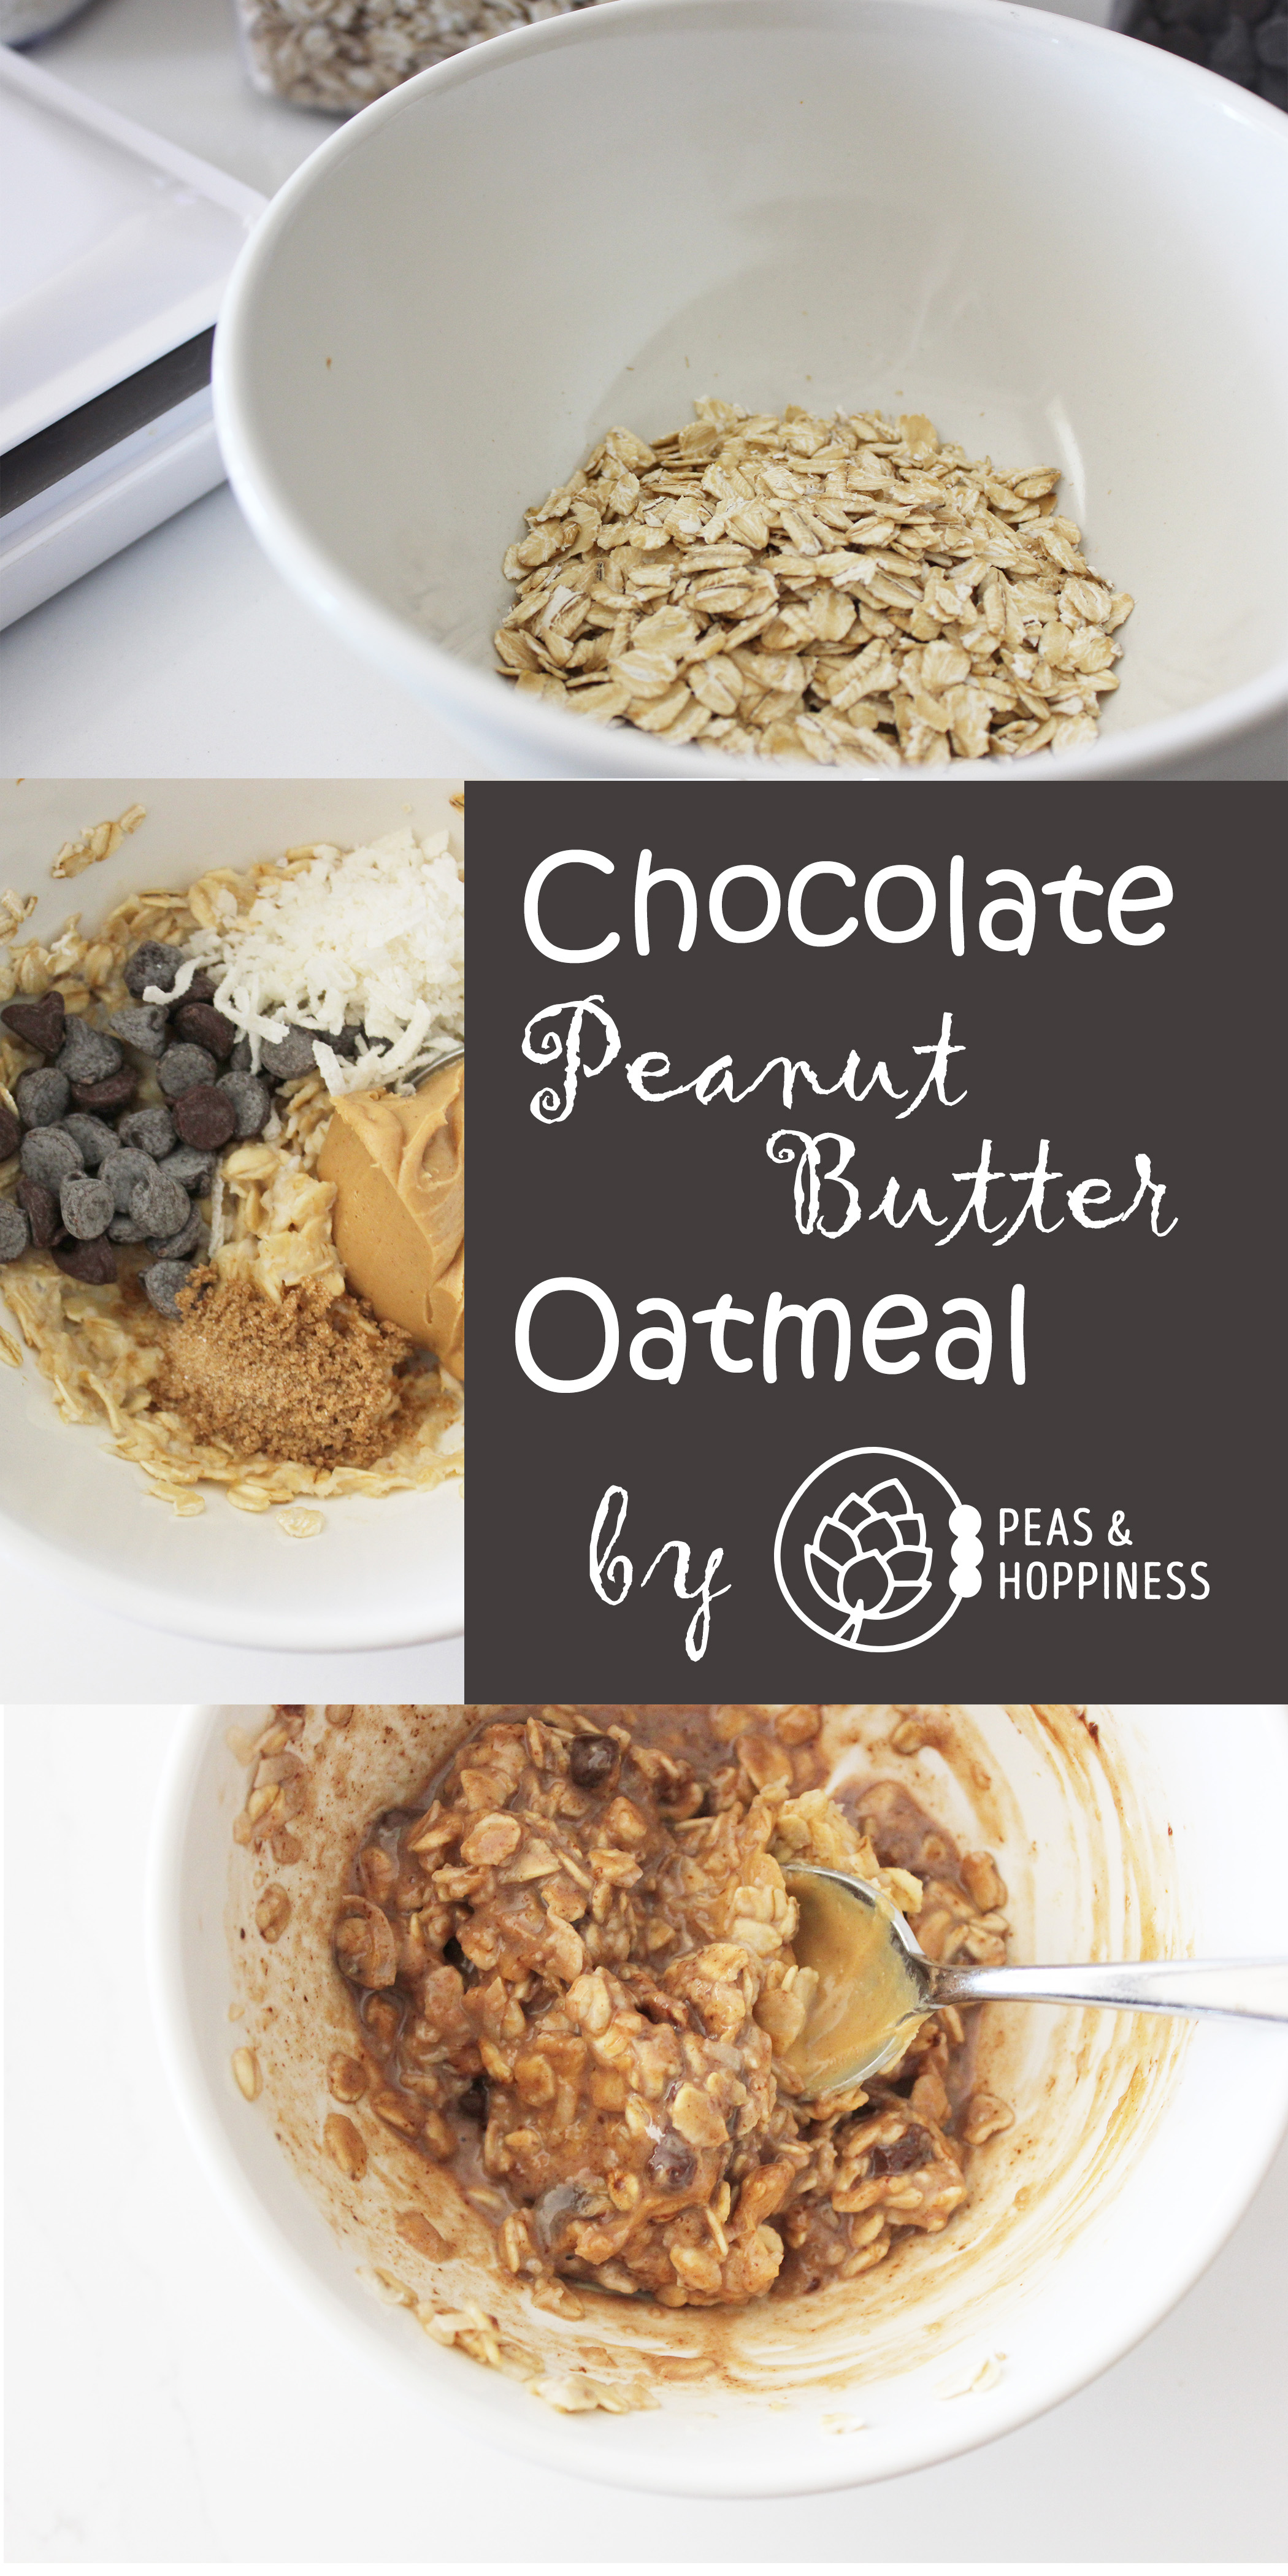 Chocolate Peanut Butter Oatmeal by Peas & Hoppiness - www.peasandhoppiness.com